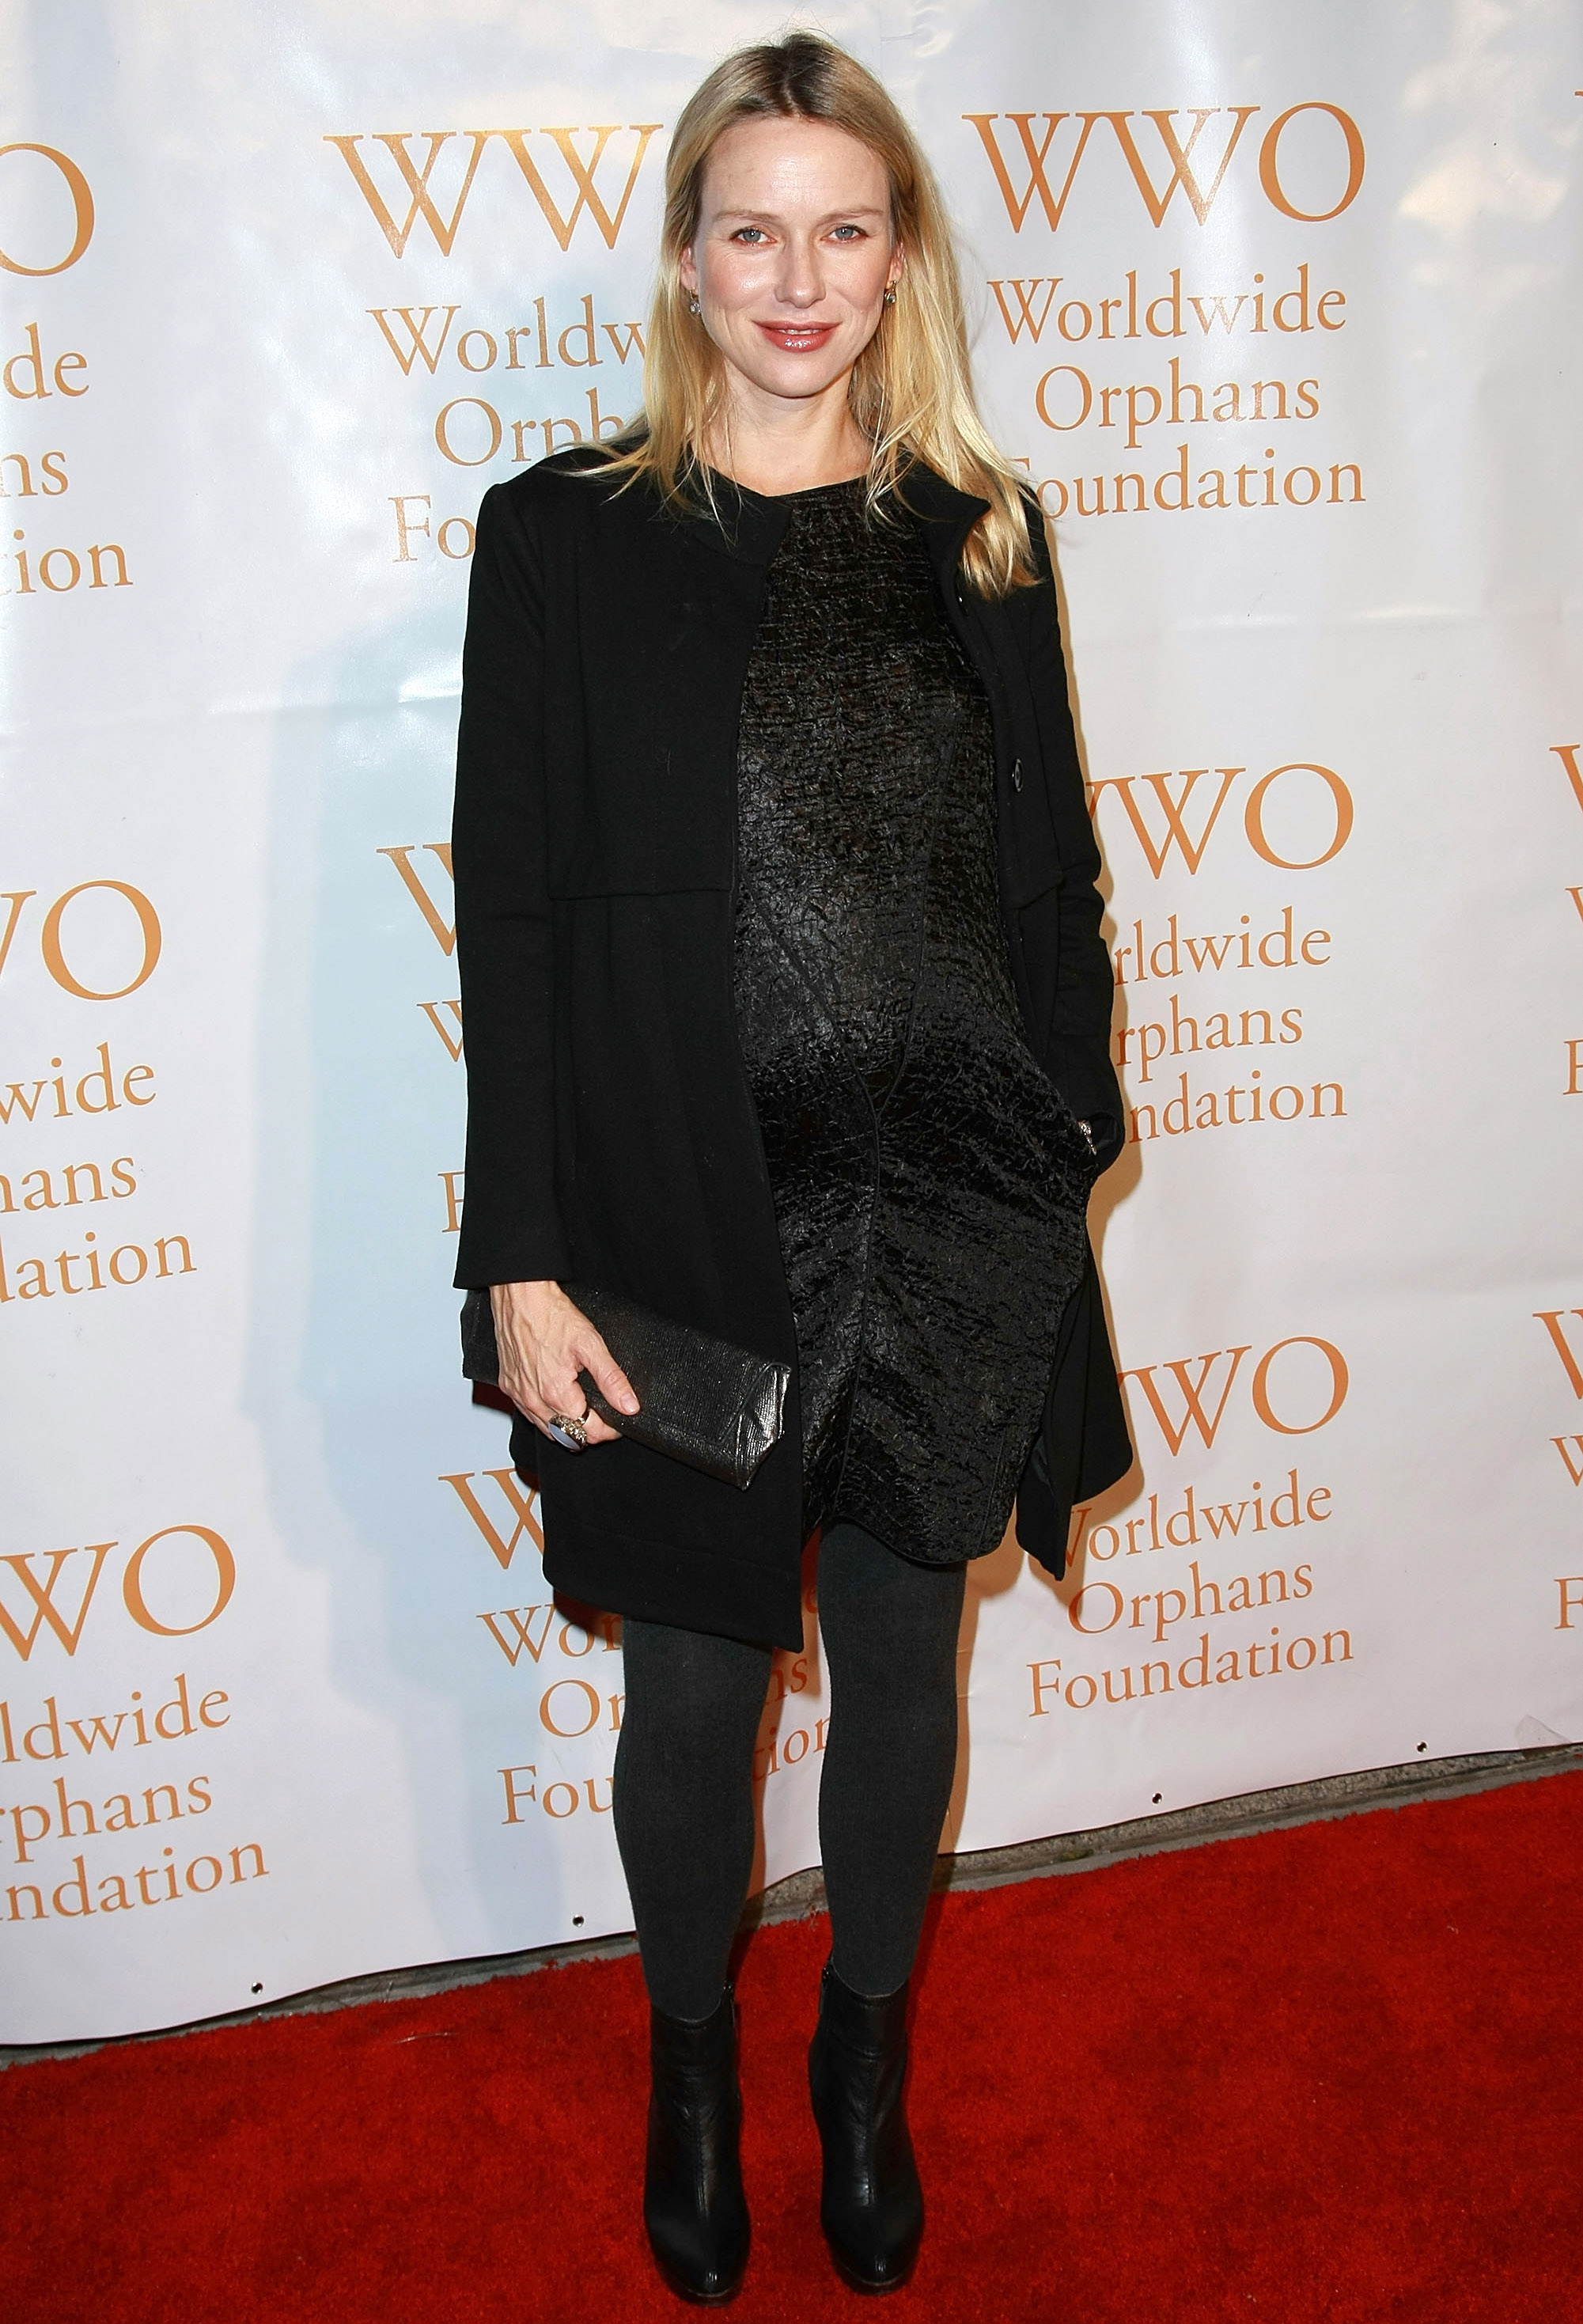 81781_Celebutopia-Naomi_Watts-4th_Annual_Worldwide_Orphans_Foundation_benefit_gala-06_122_972lo.jpg